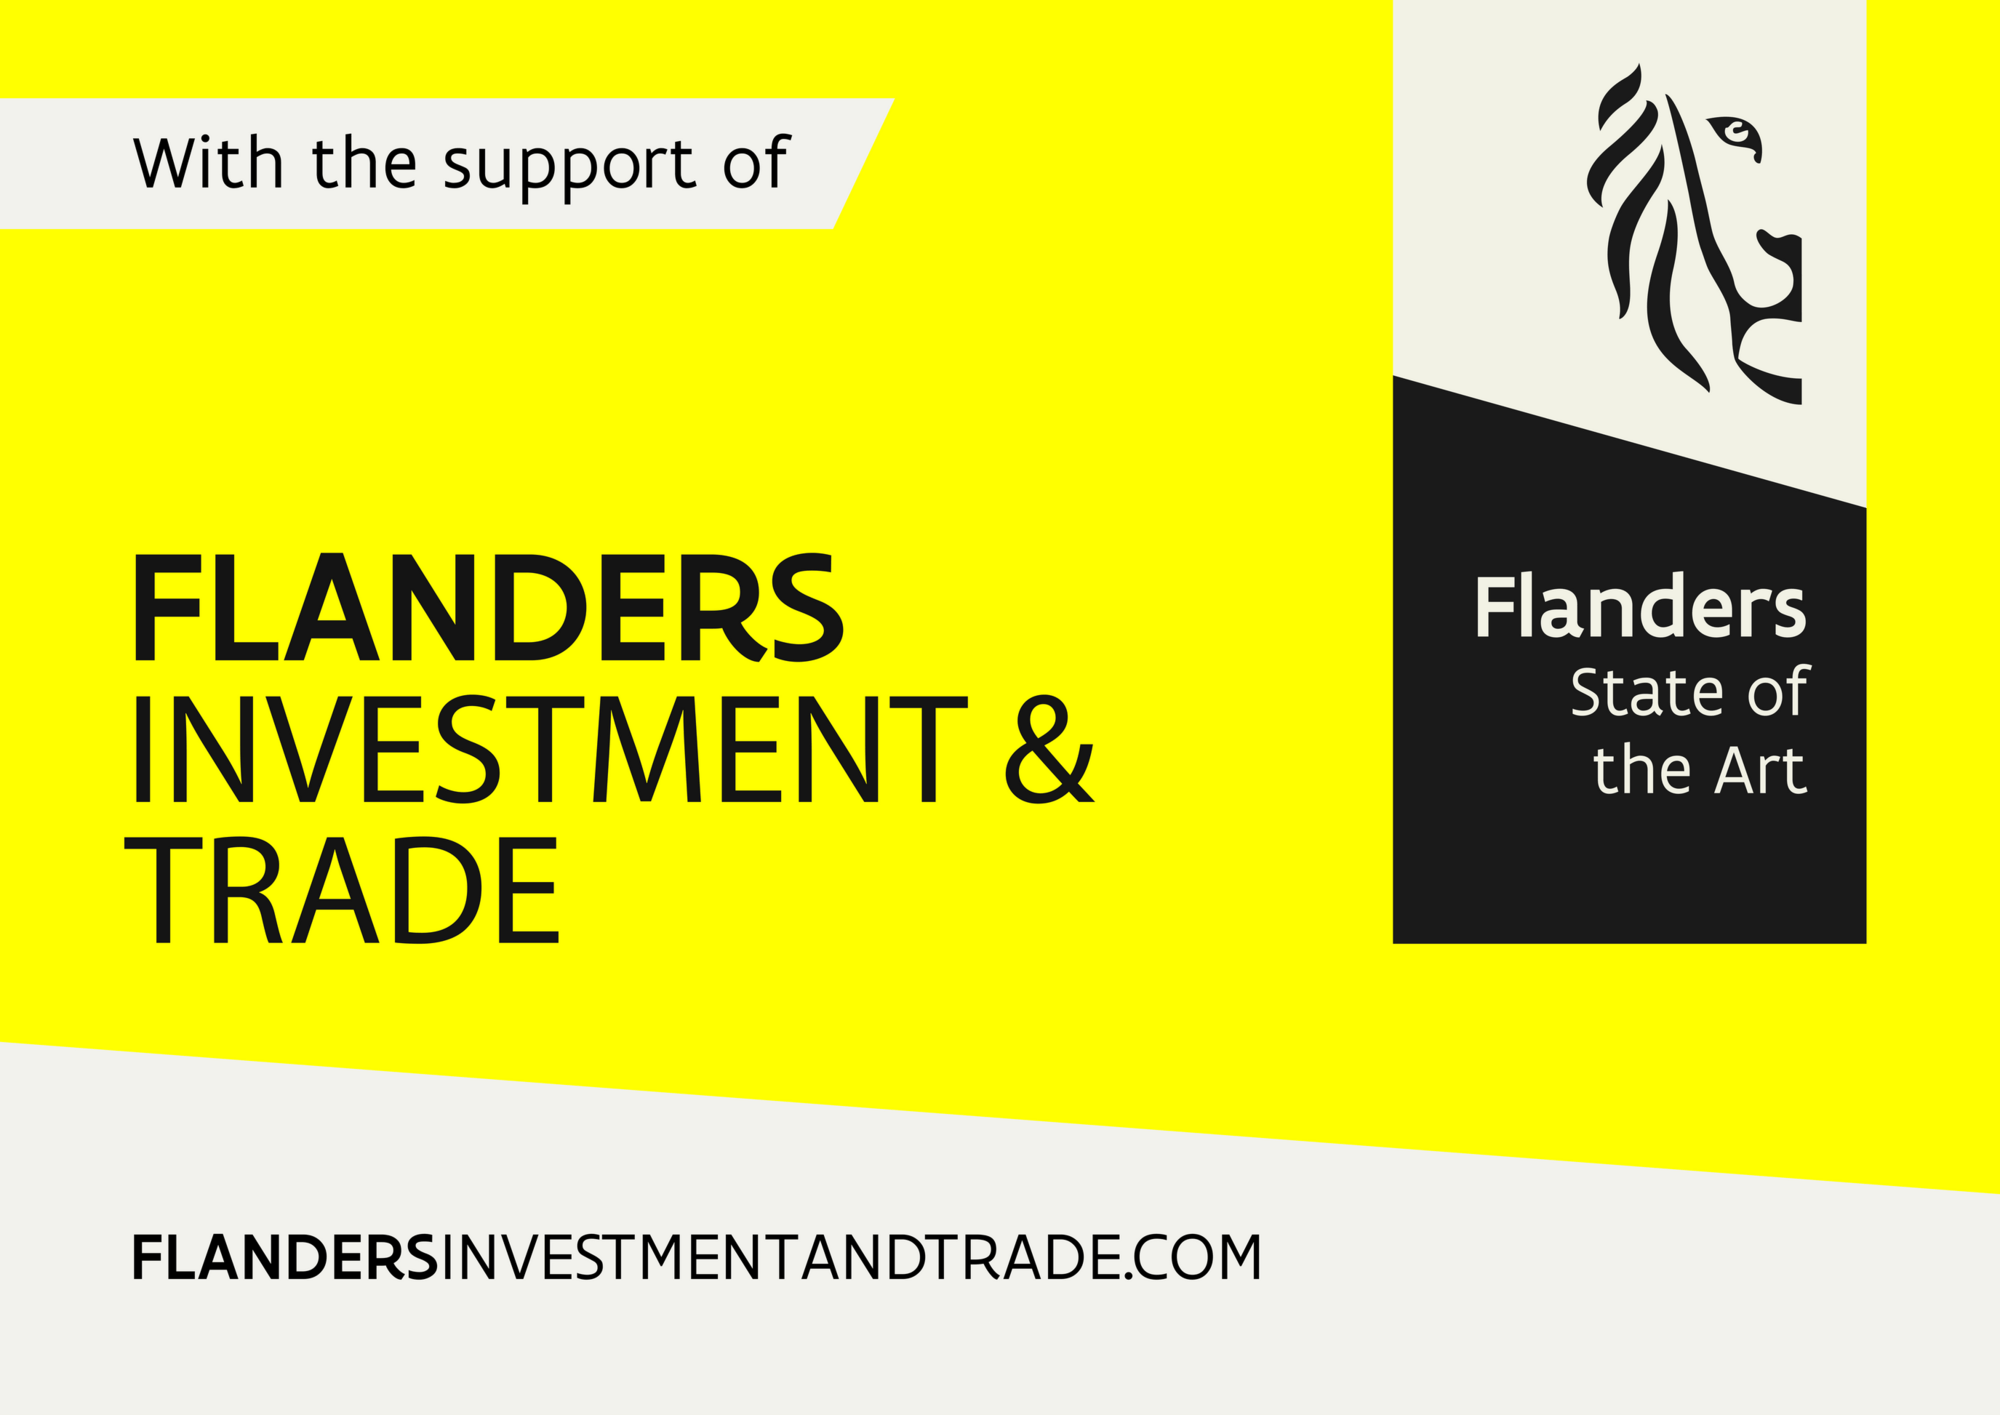 Deze website is gefinancierd met de steun van Flanders Investment & Trade